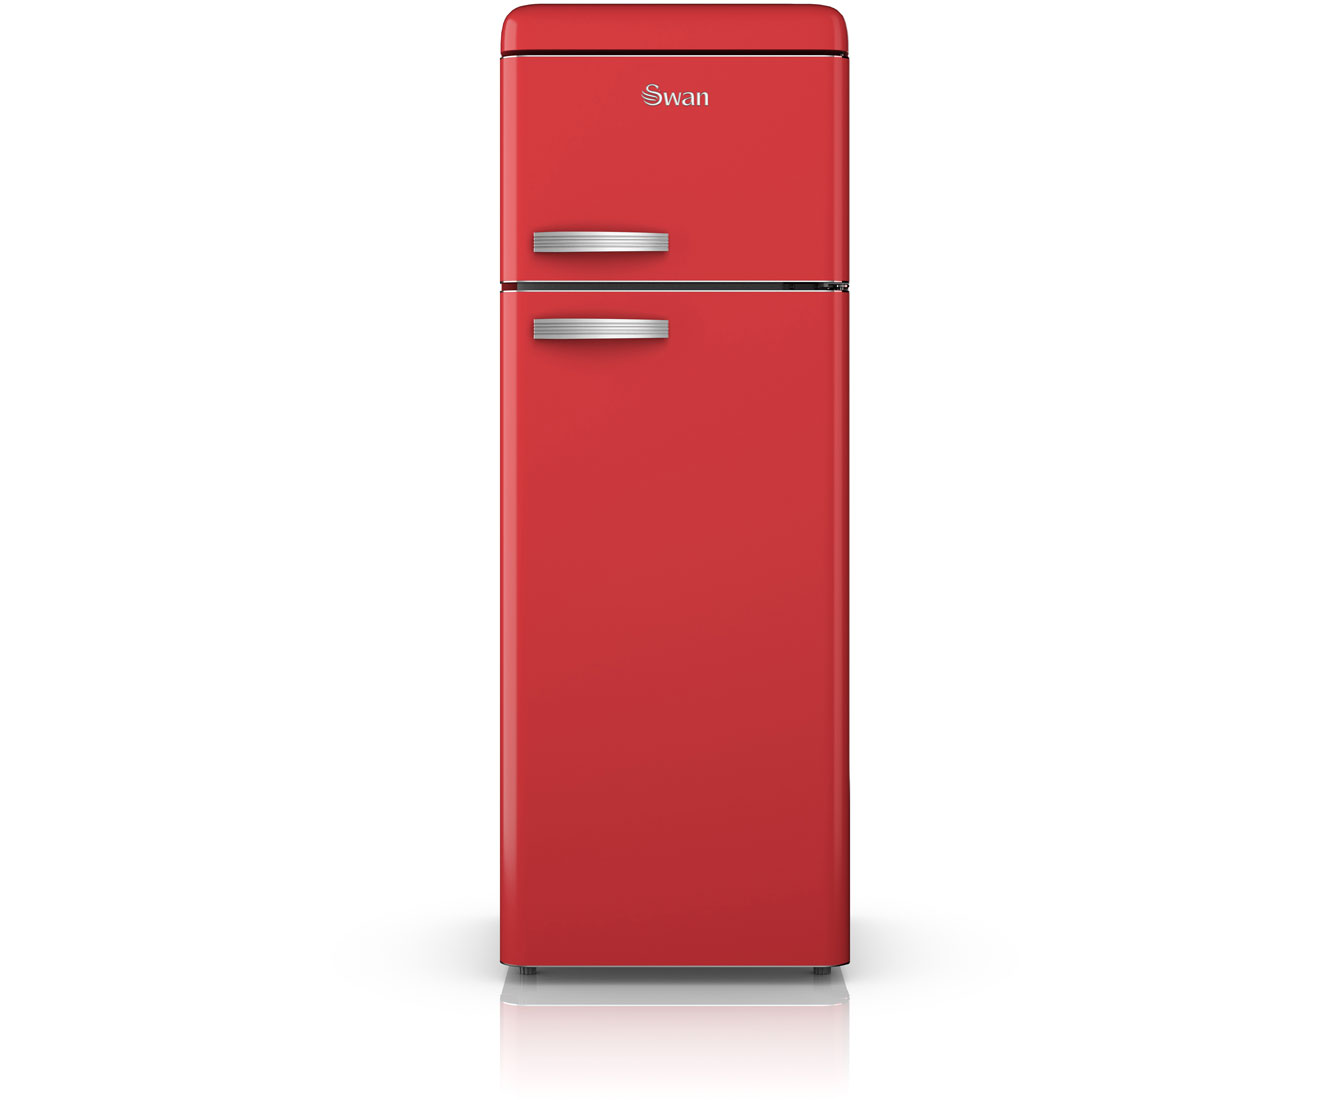 Swan Retro SR11010RN Free Standing Fridge Freezer in Red